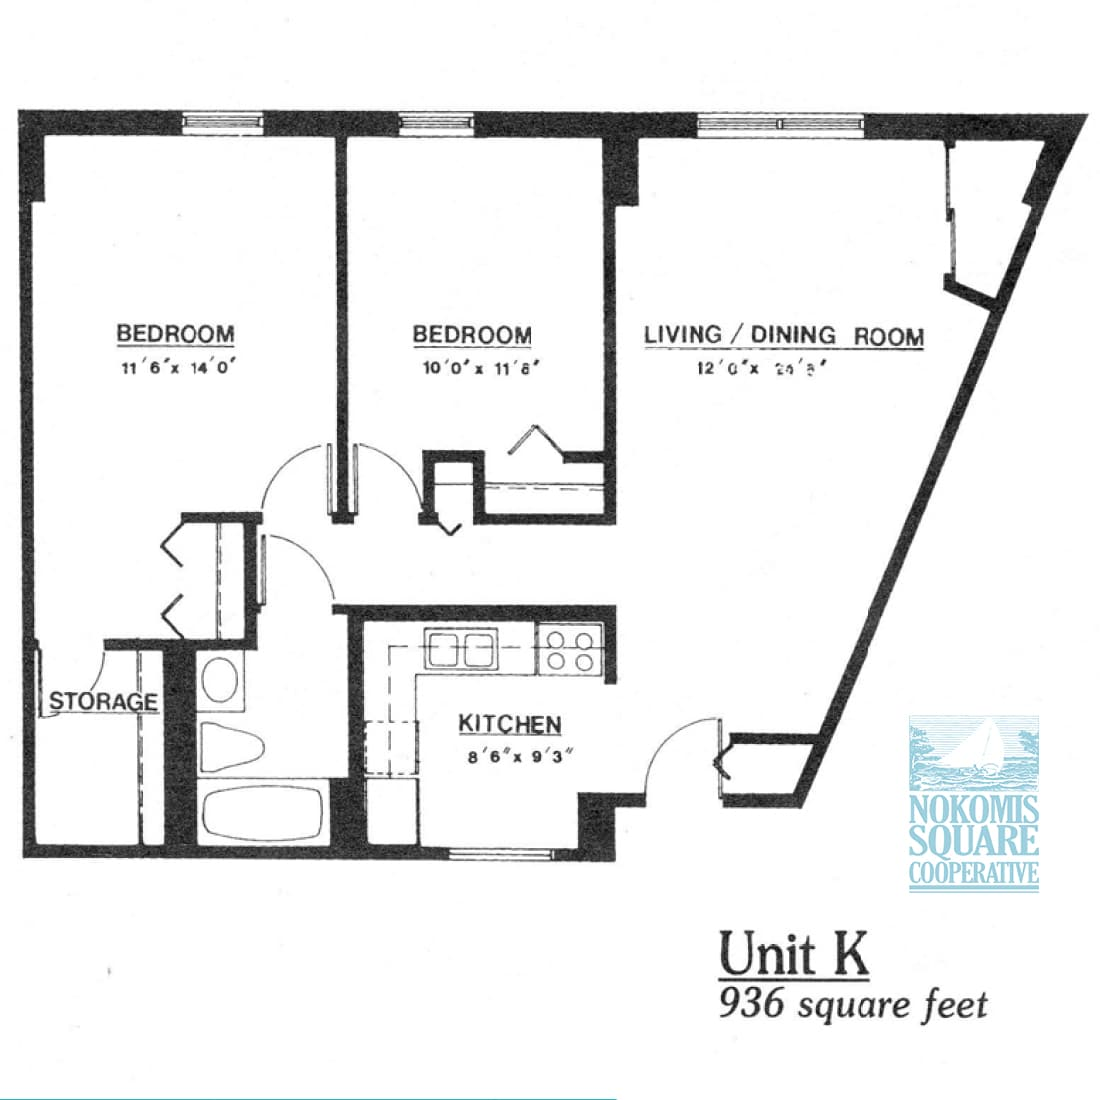 2 br Floorplan Unit K - Nokomis Square Senior Cooperative